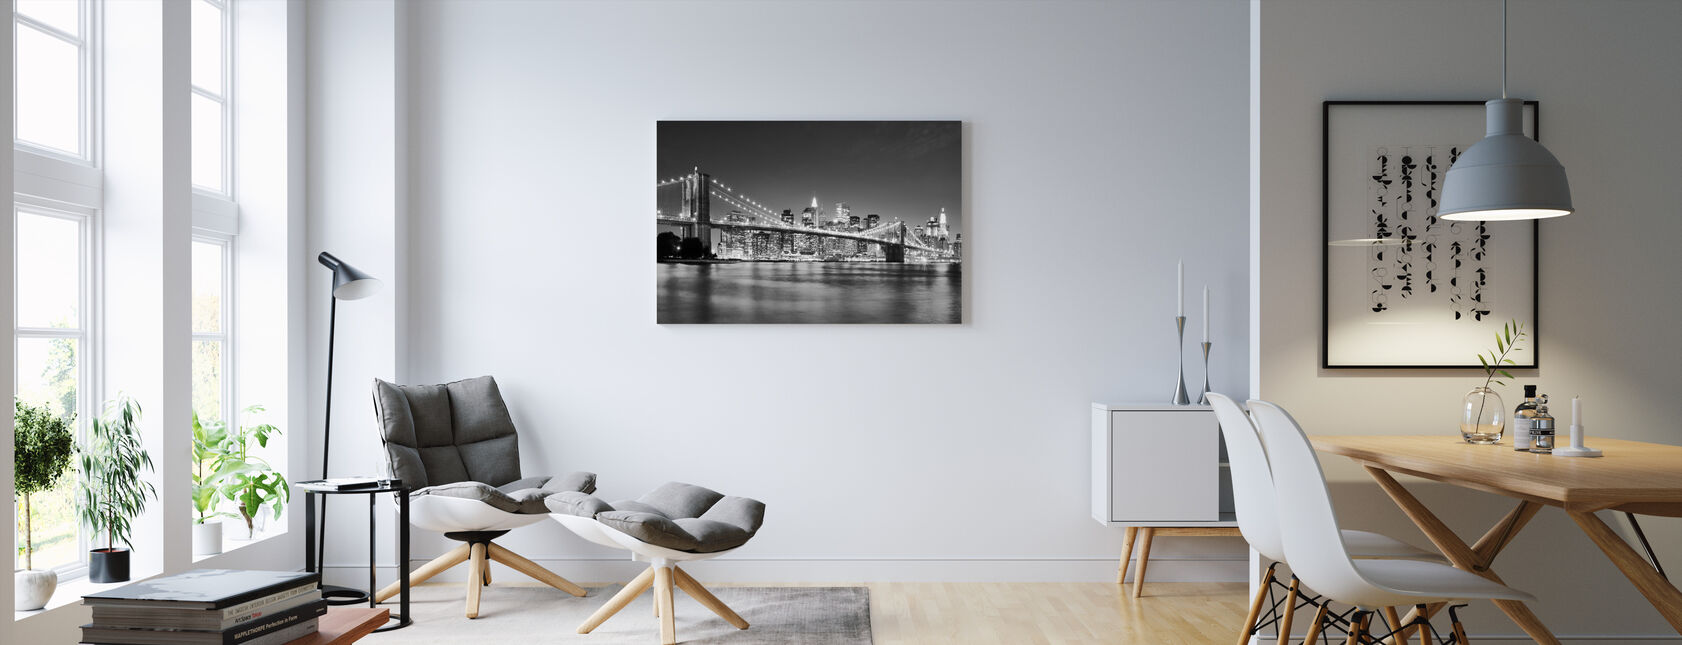 Bright Brooklyn Bridge - z/w - Canvas print - Woonkamer